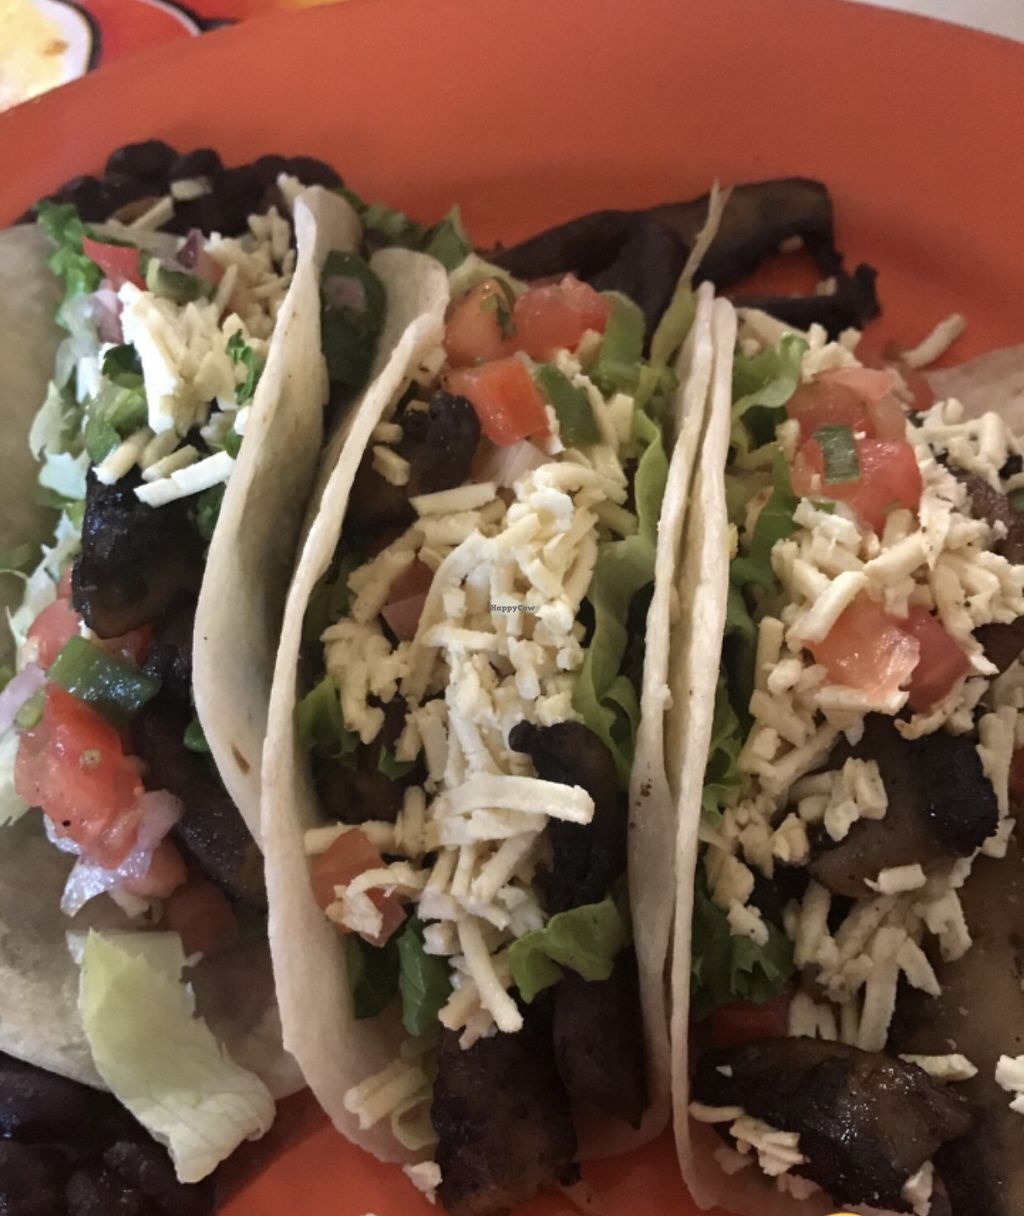 """Photo of Mother's Cantina  by <a href=""""/members/profile/MellMoreira"""">MellMoreira</a> <br/>3 taco meal - portobello mushrooms with pico, lettuce, pico, black beans, rice & vegan cheese  <br/> September 2, 2017  - <a href='/contact/abuse/image/22152/300196'>Report</a>"""